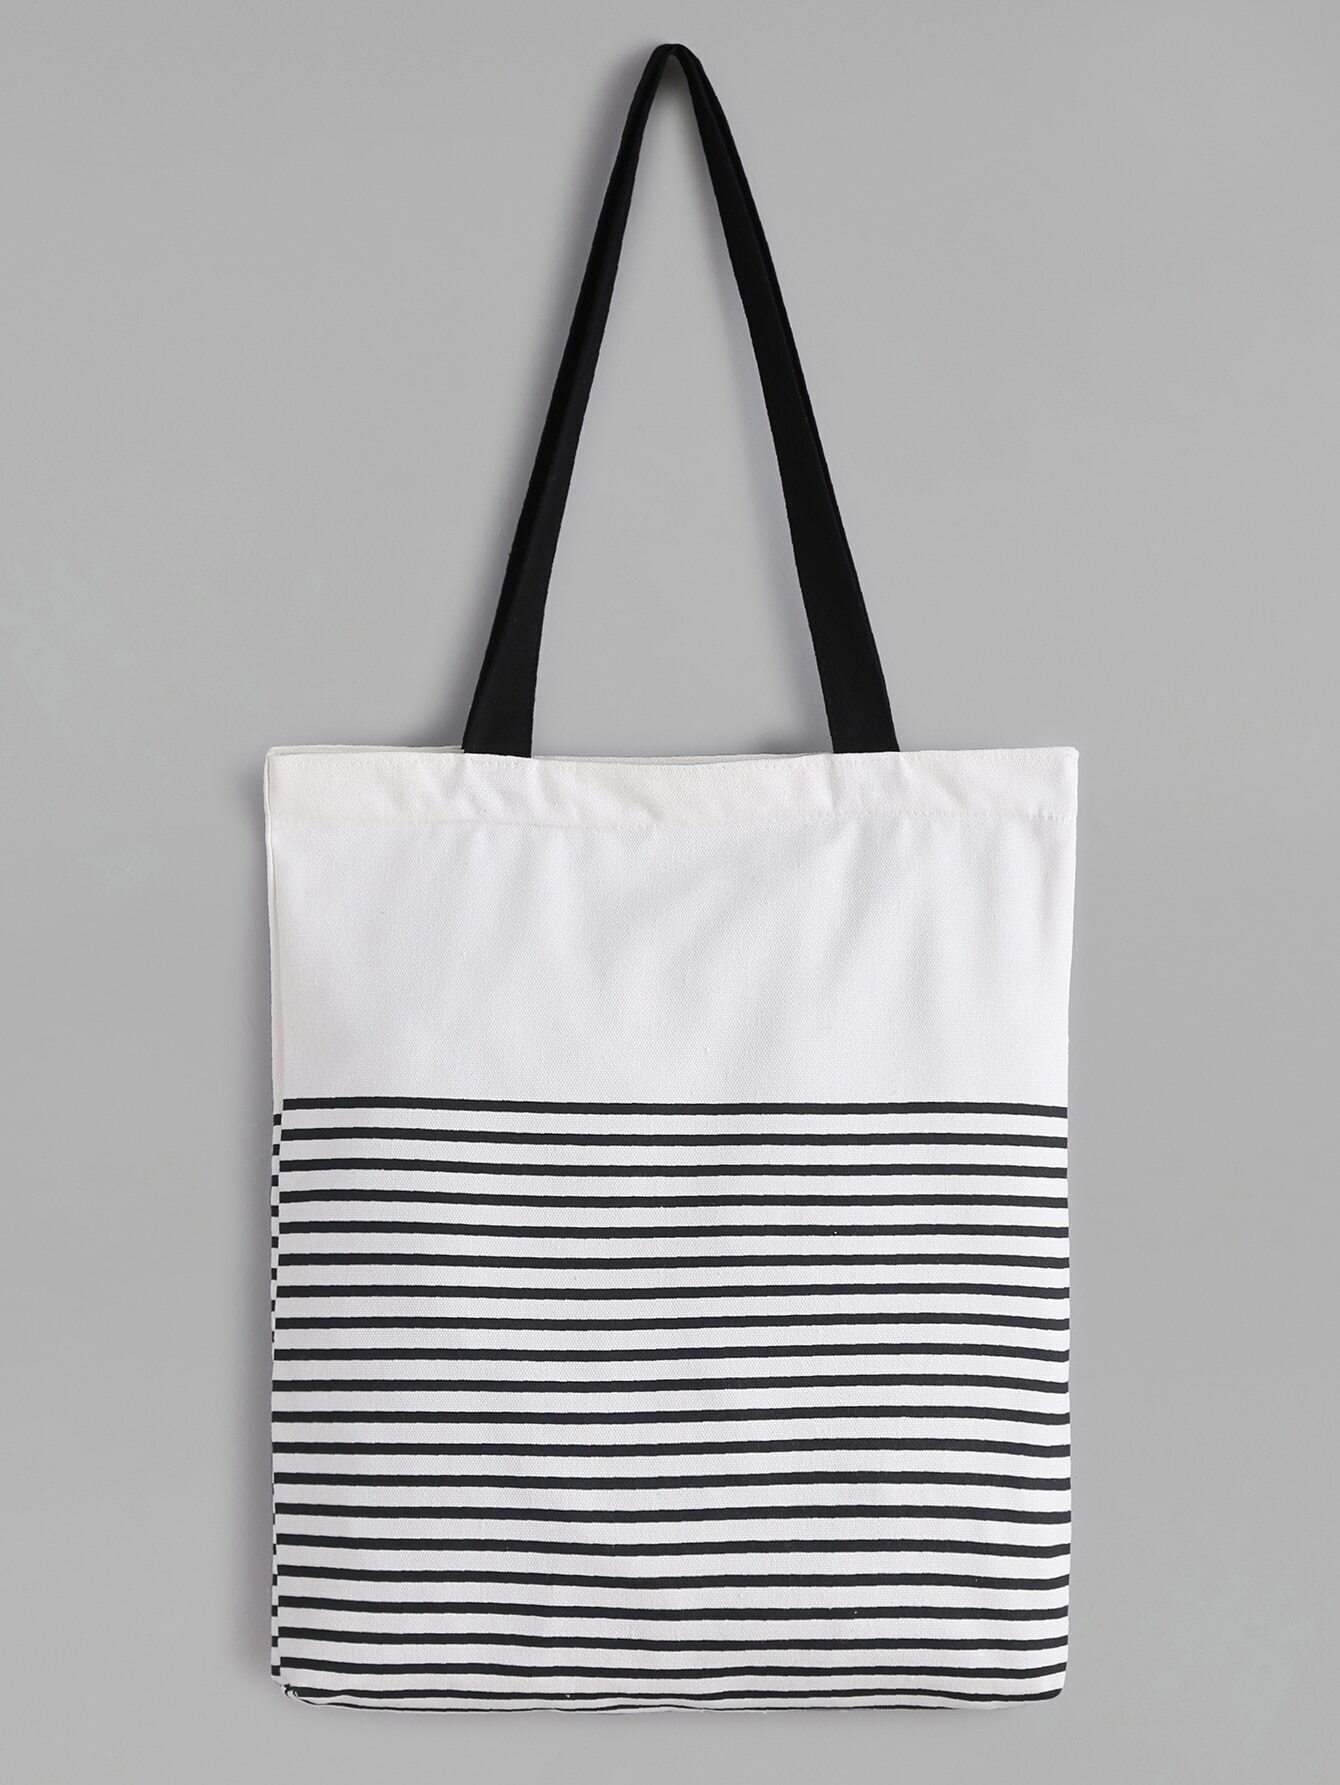 White Striped Canvas Tote Bag With Black Strap Pictures